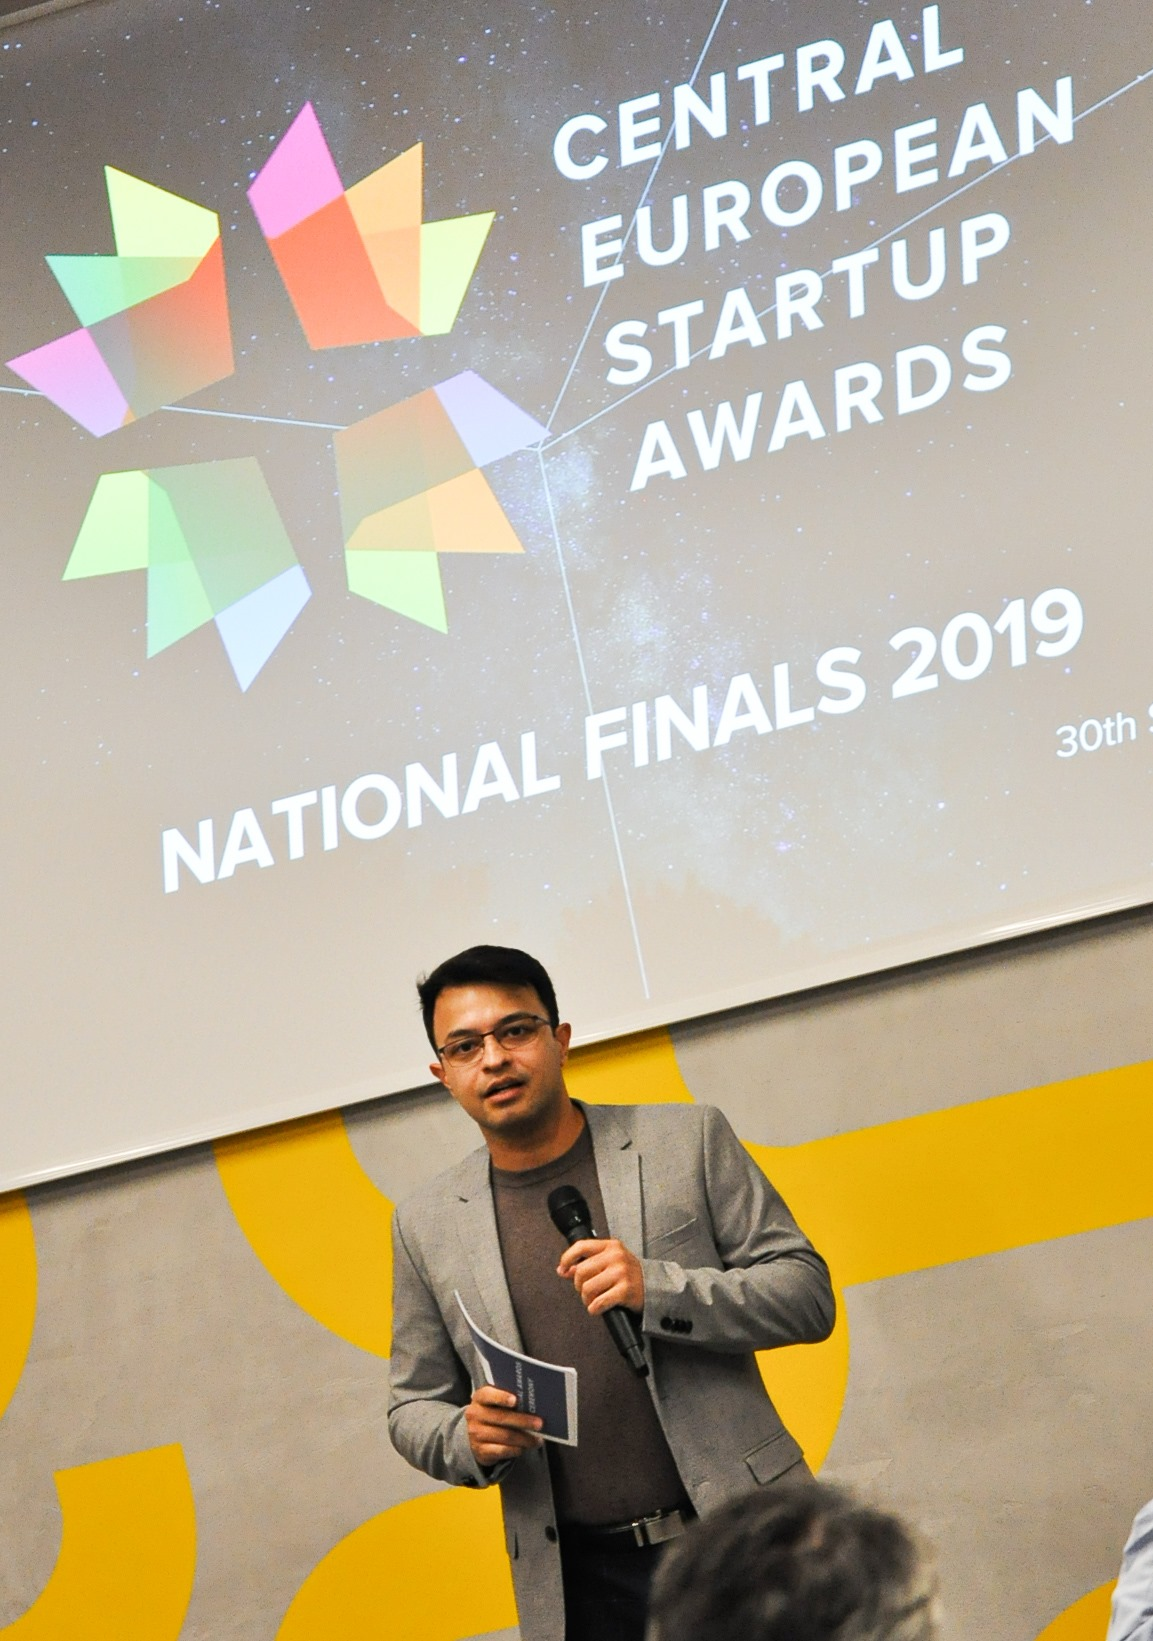 Hosted the Hungarian finals of the Central European Startup Awards